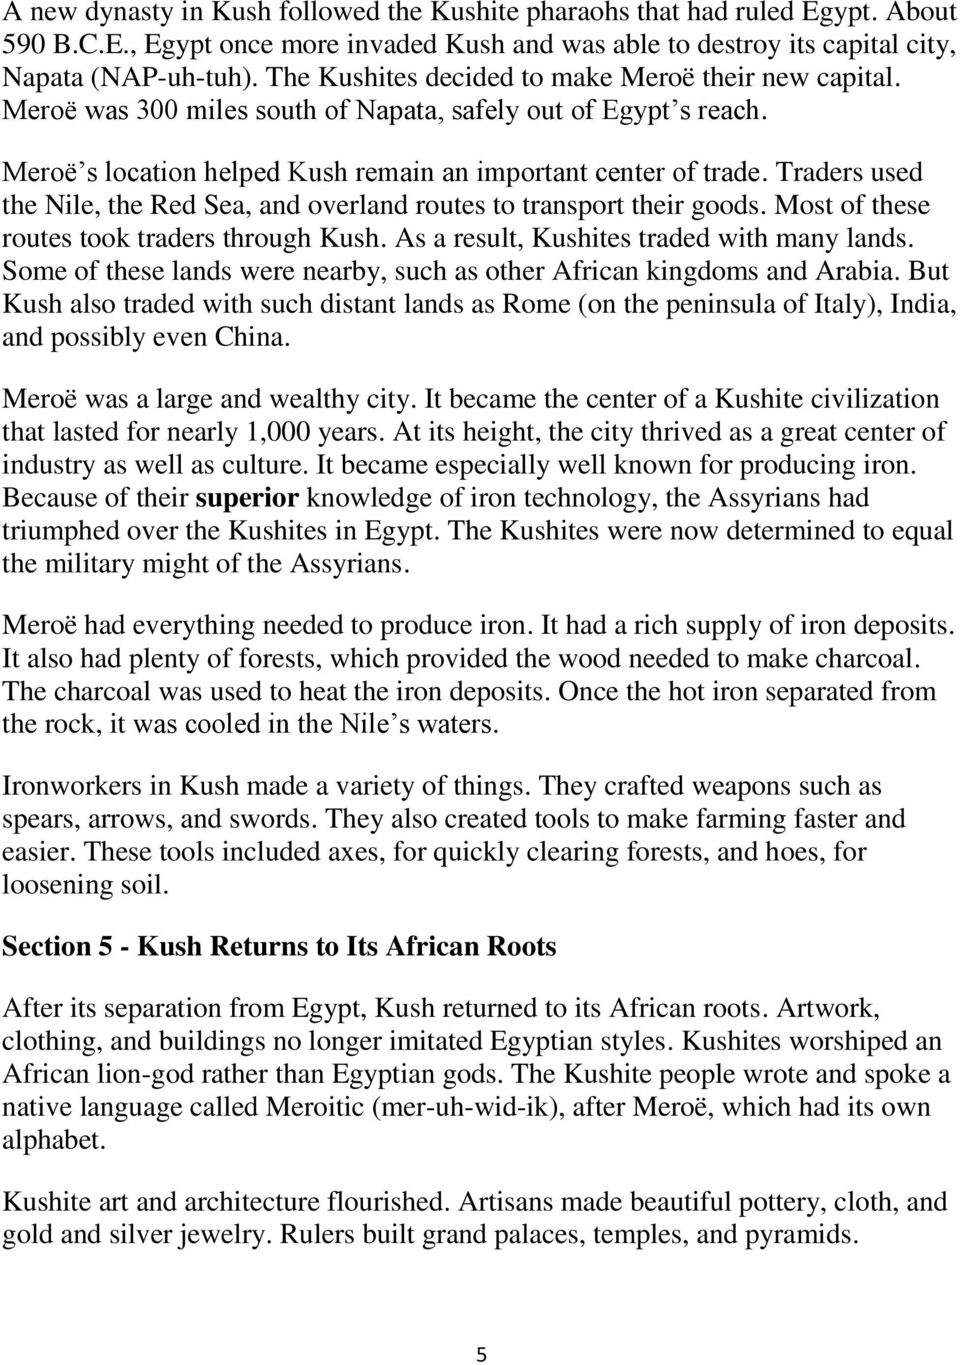 Traders used the Nile, the Red Sea, and overland routes to transport their goods. Most of these routes took traders through Kush. As a result, Kushites traded with many lands.